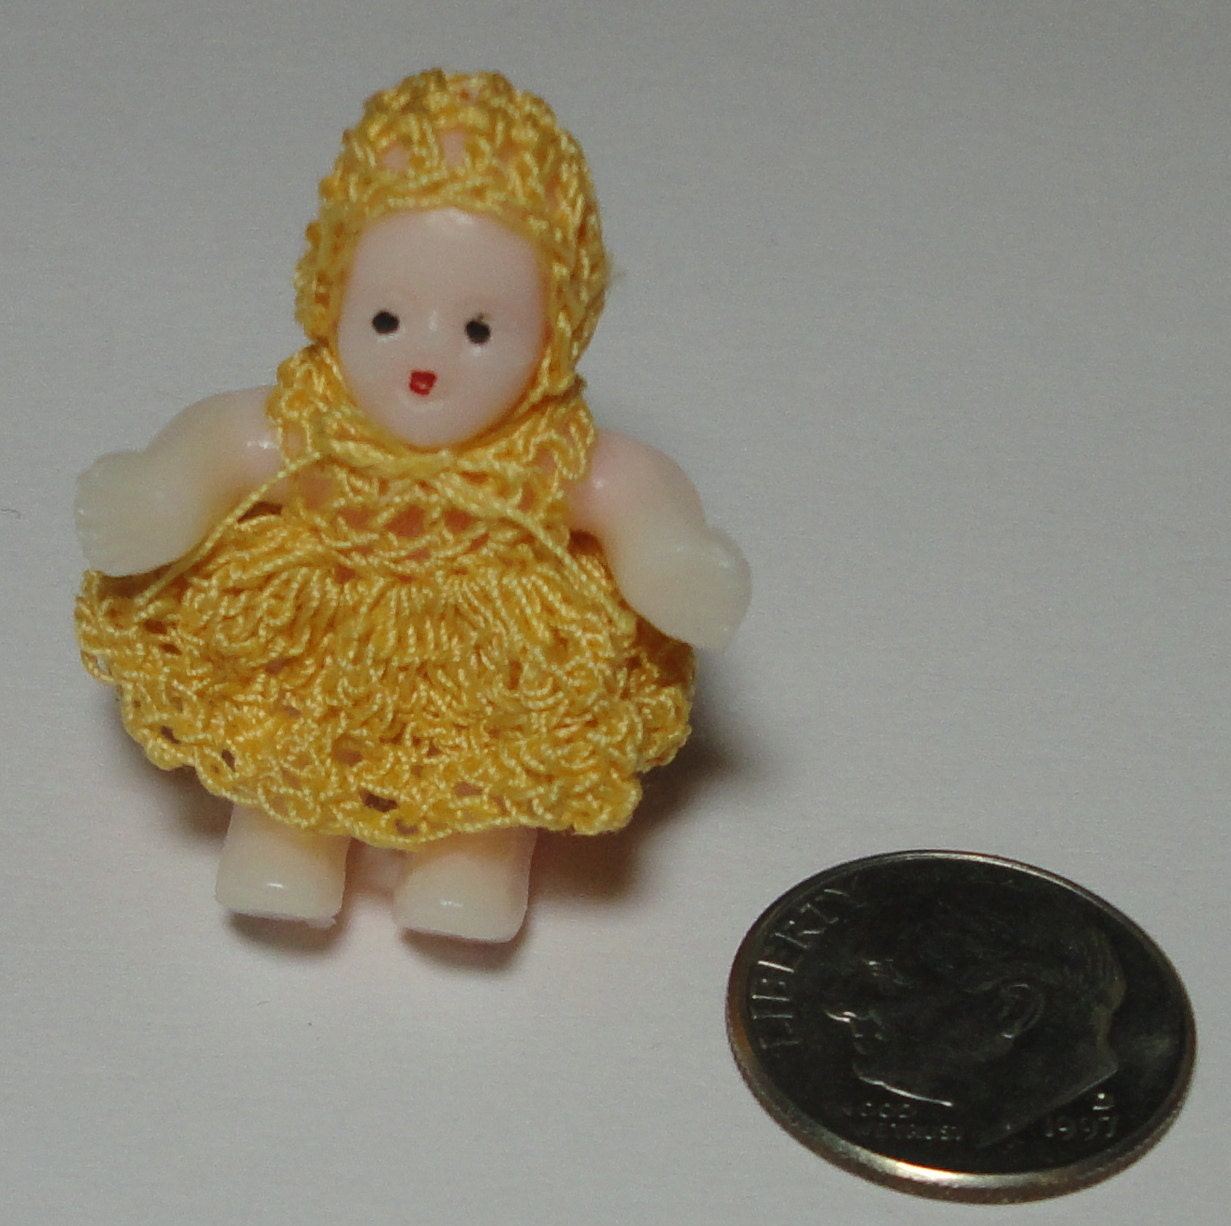 Vintage Miniature Doll with Crochet Dress and Hat. Doll